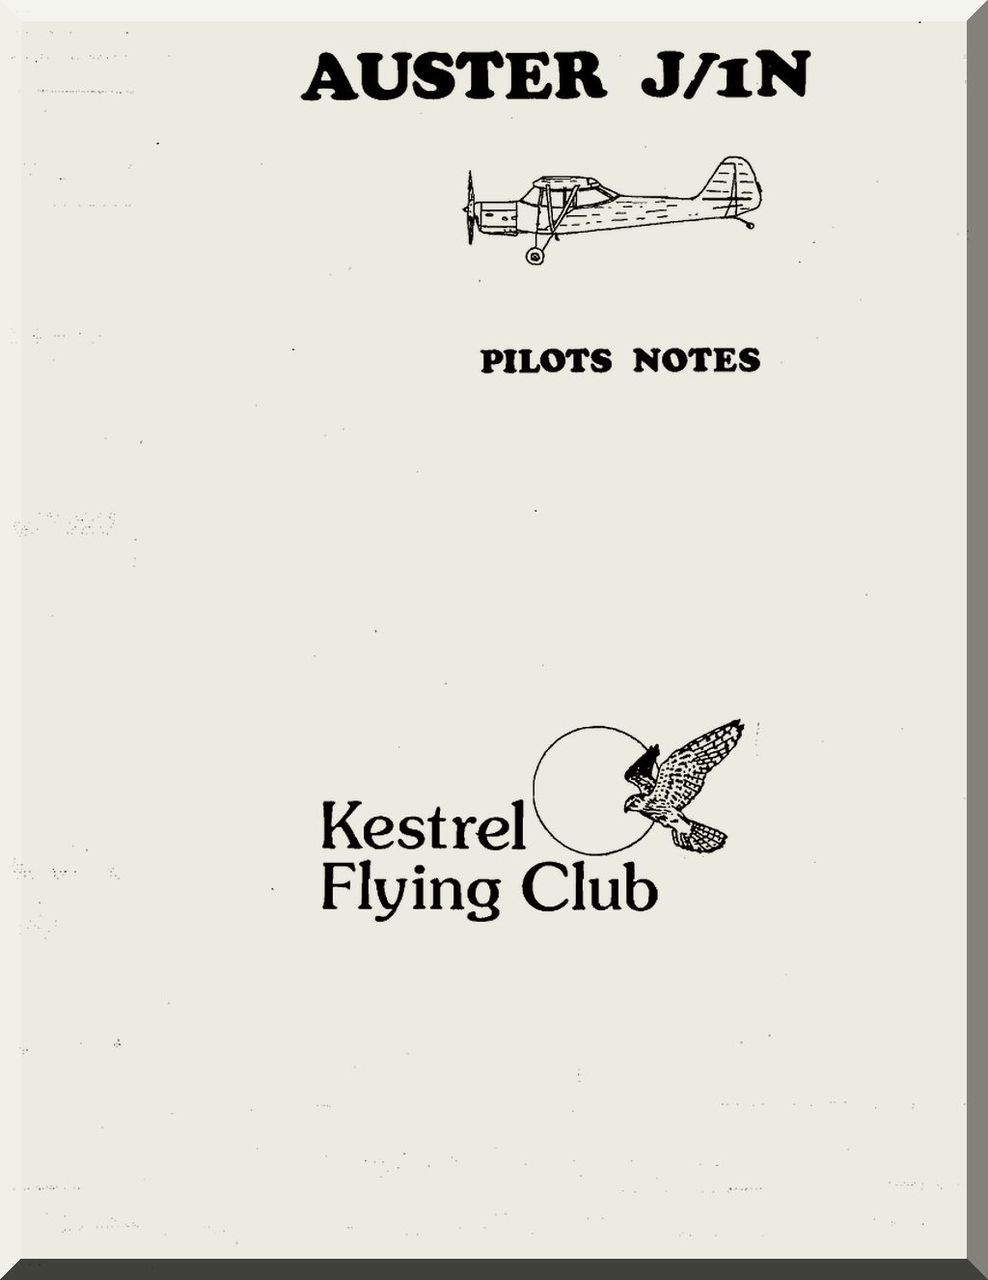 Auster J1N Aircraft Instructions Pilot's Notes Manual